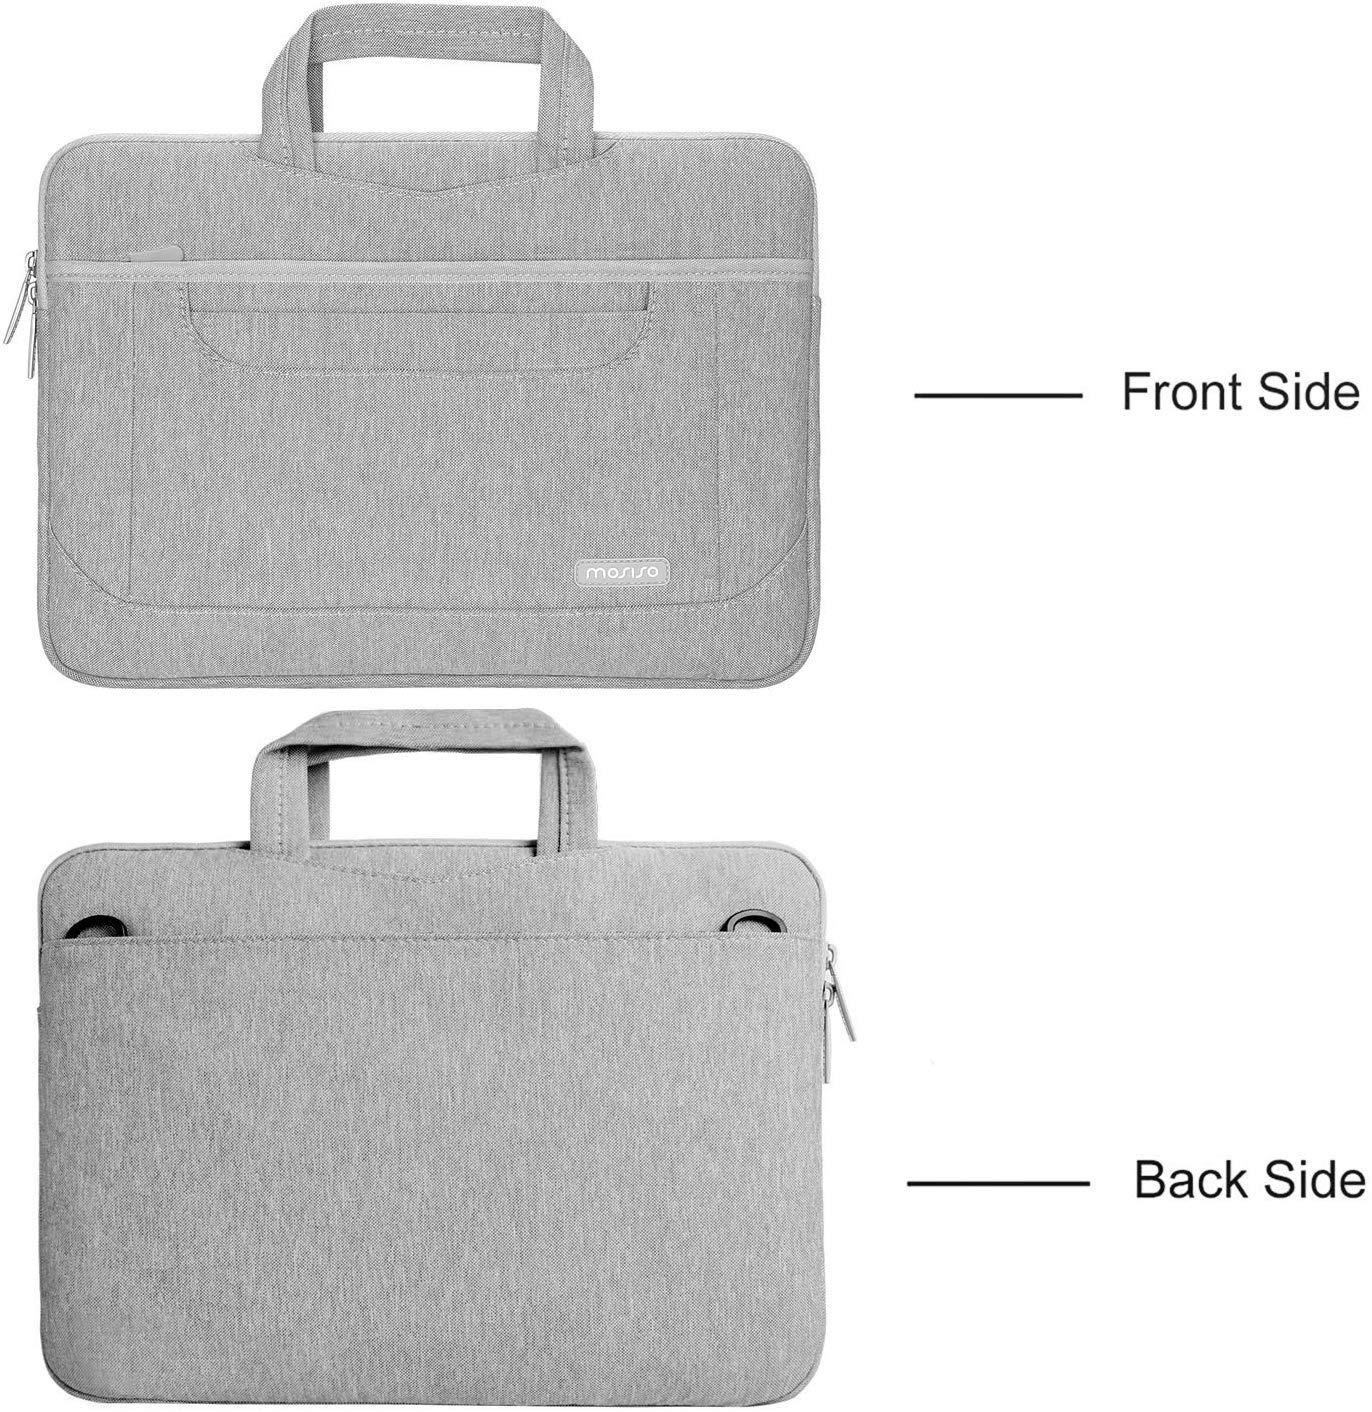 MOSISO Laptop Shoulder Bag Compatible with 13-13.3 Inch MacBook Pro//MacBook Air//Notebook with Organizer Pockets Multiuse Travel Work Business Messenger Briefcase Case Sleeve for Men /& Women Gray